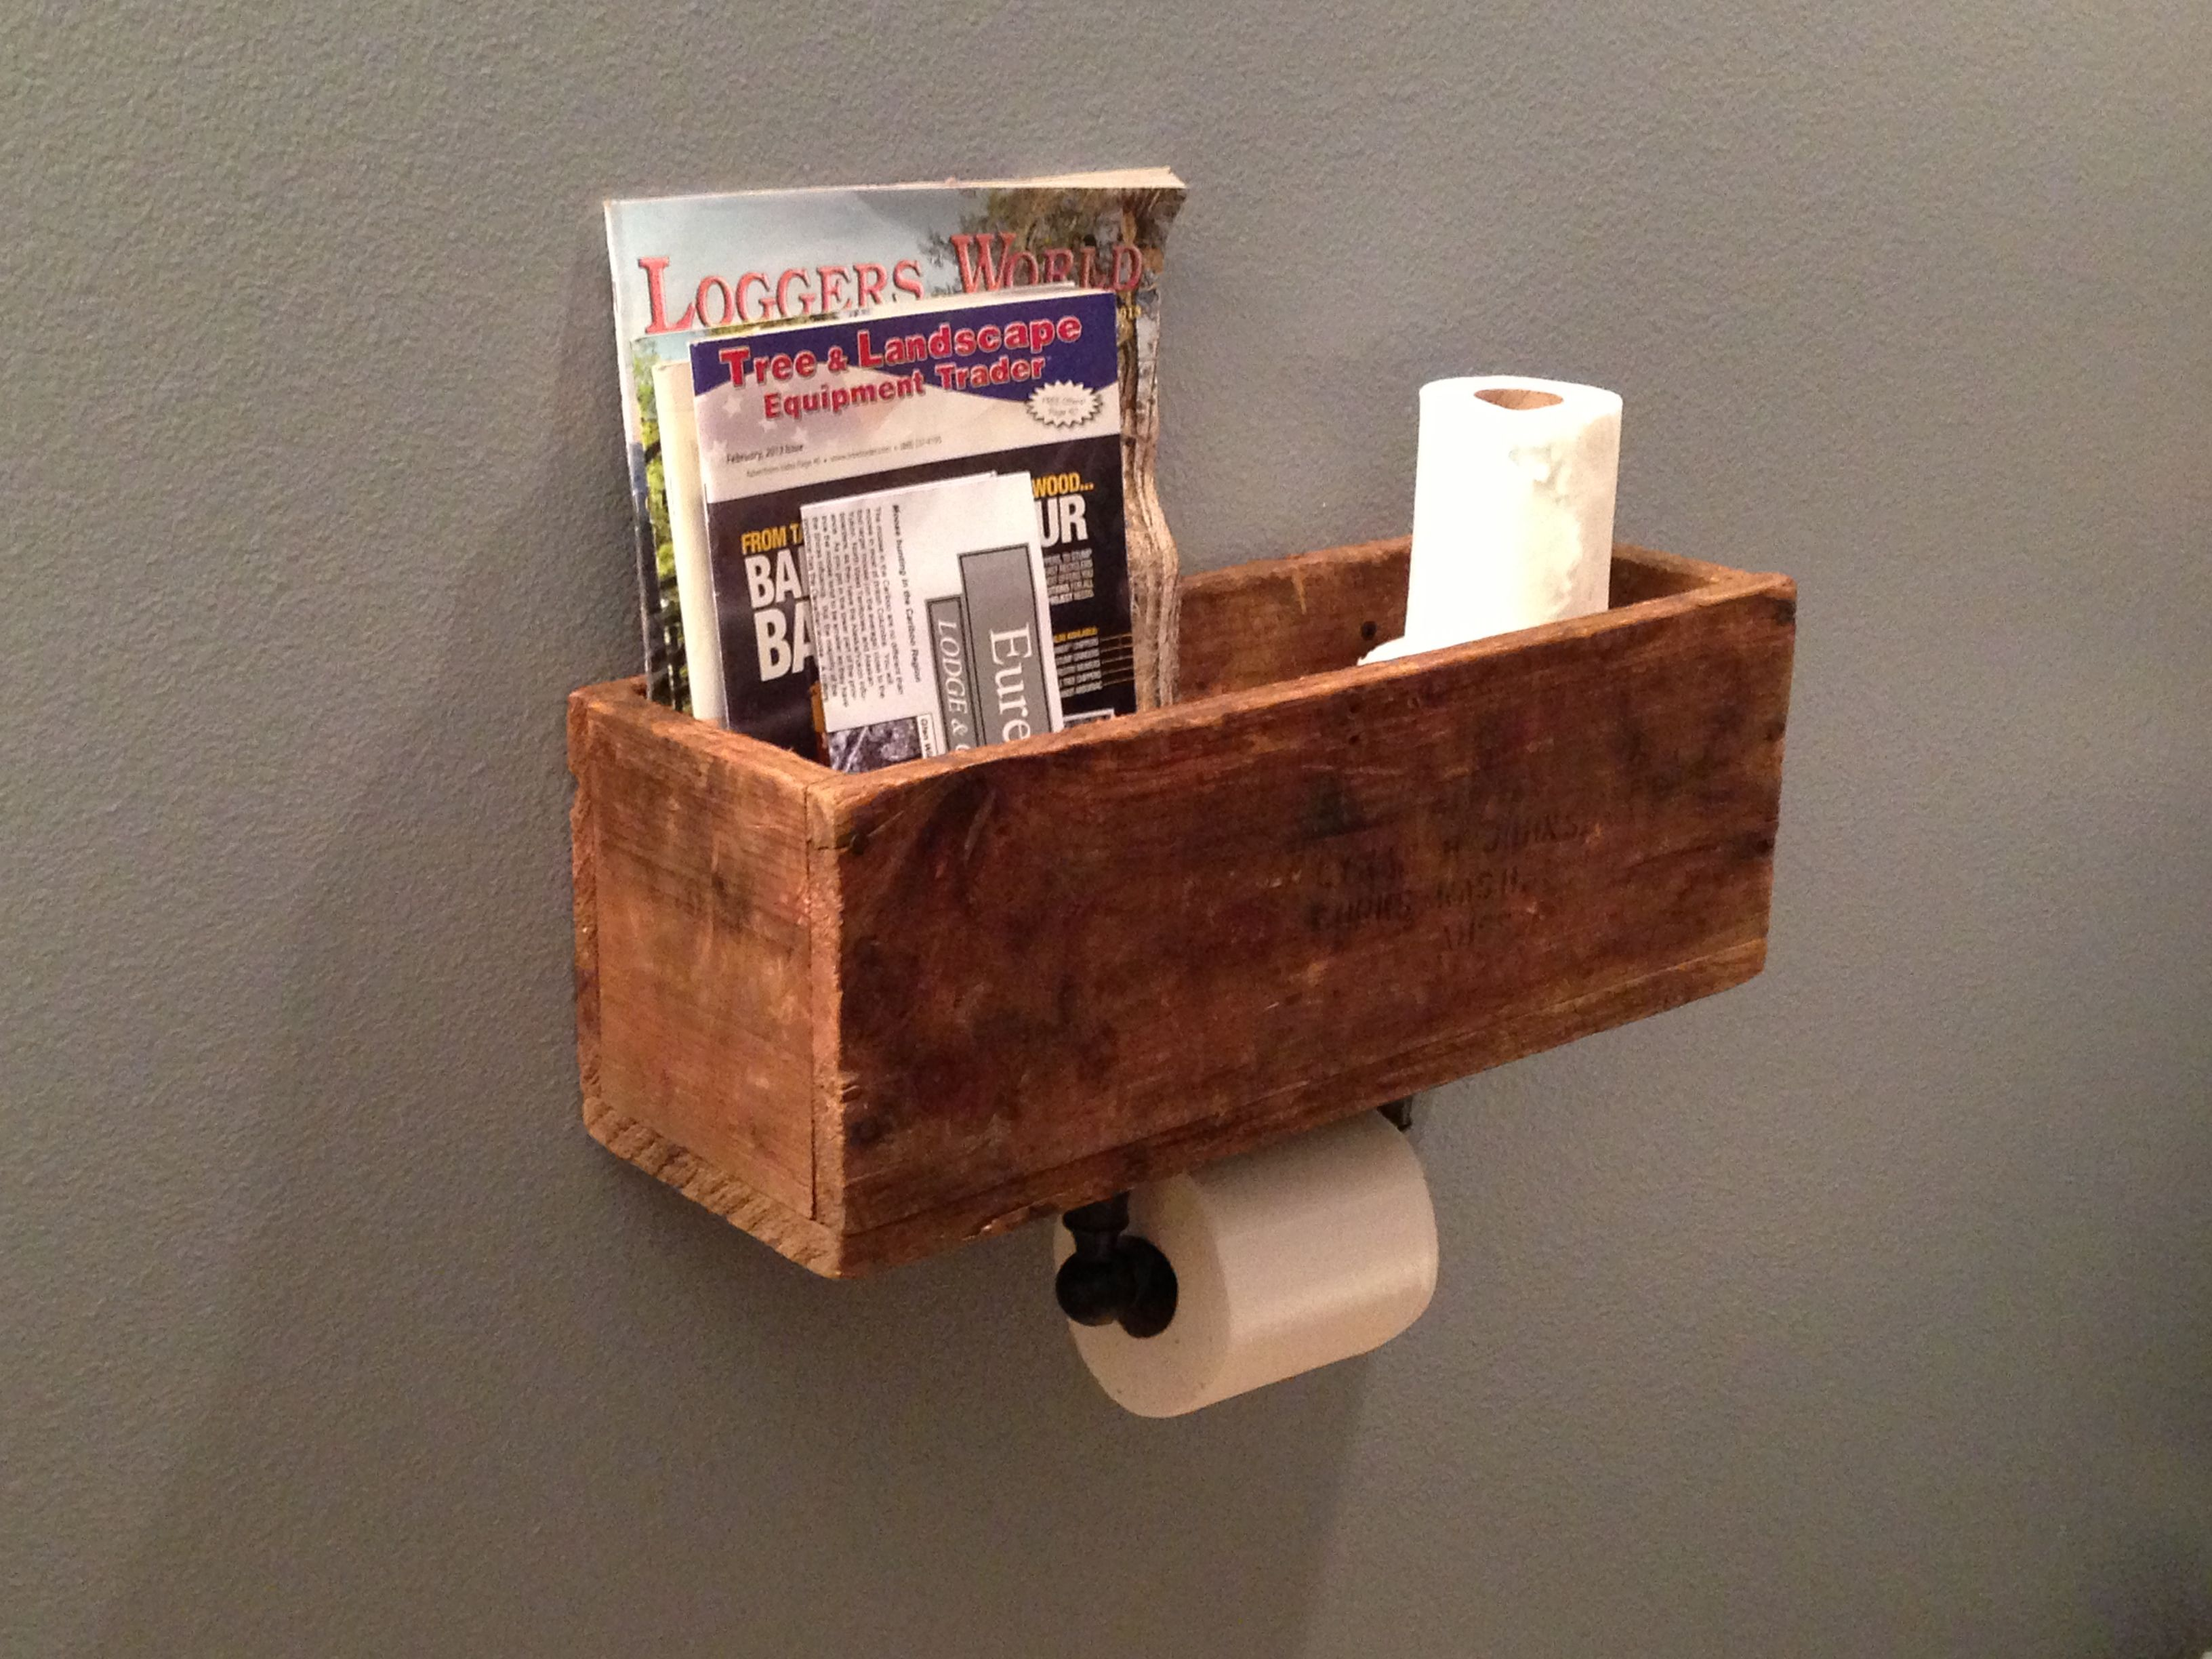 Diy Magazine Rack Toilet Paper Dispenser Very Clever Diy Toilet Paper Holder Diy Toilet Diy Magazine Holder